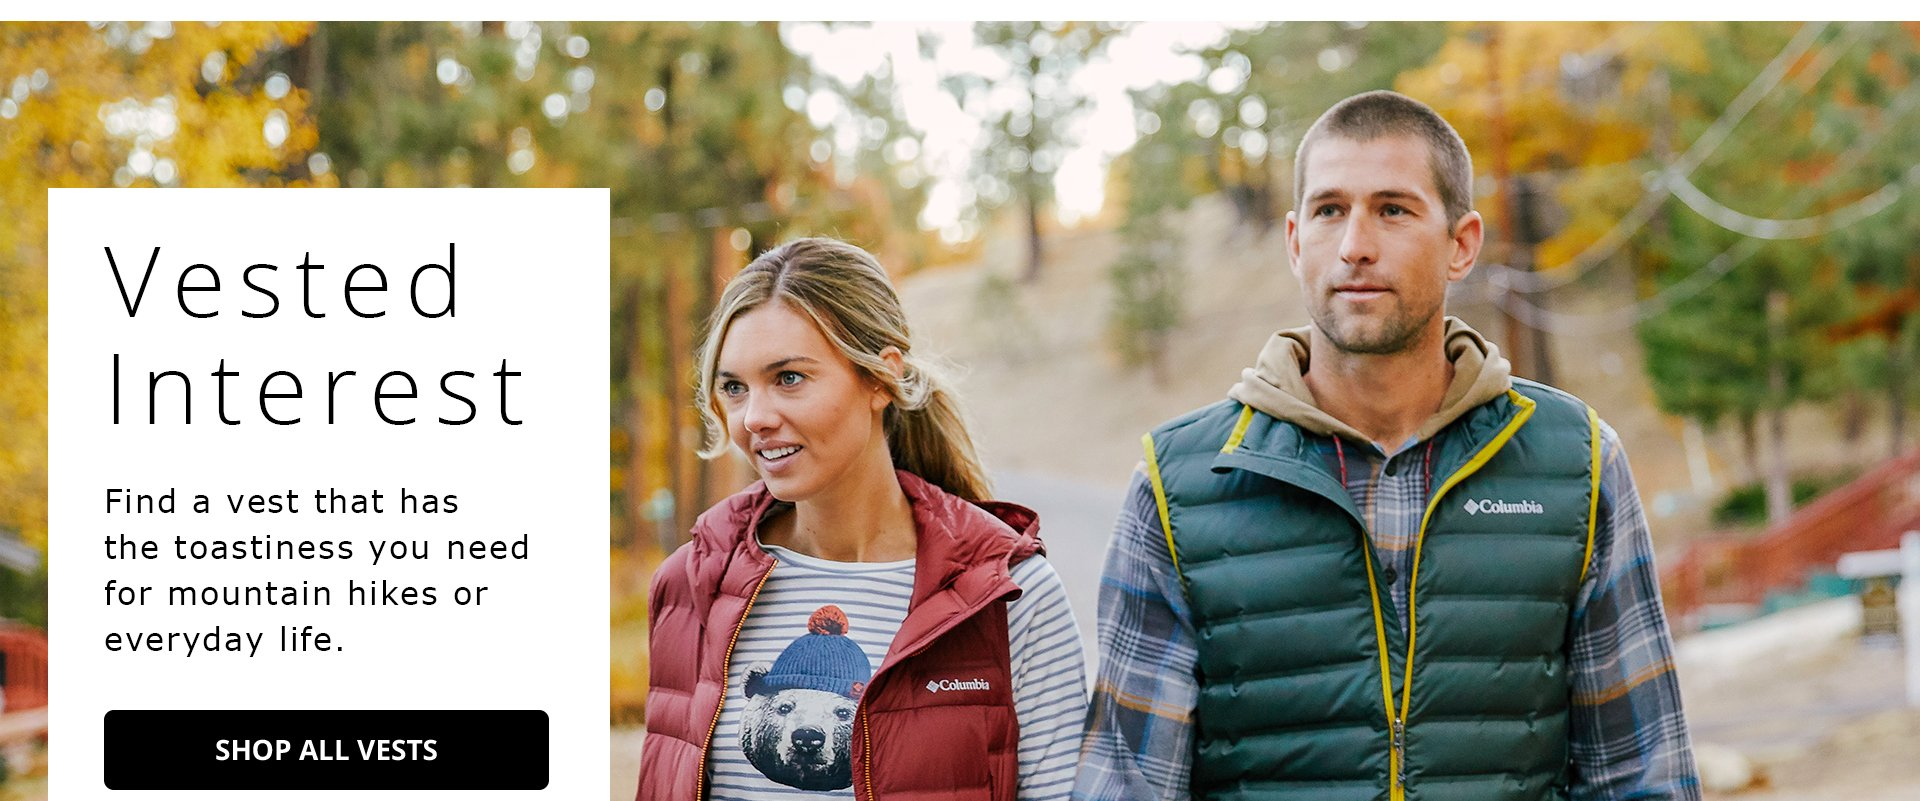 Vested Interest. Find a vest that has the toastiness you need for mountain hikes or everyday life. Shop All Vests.